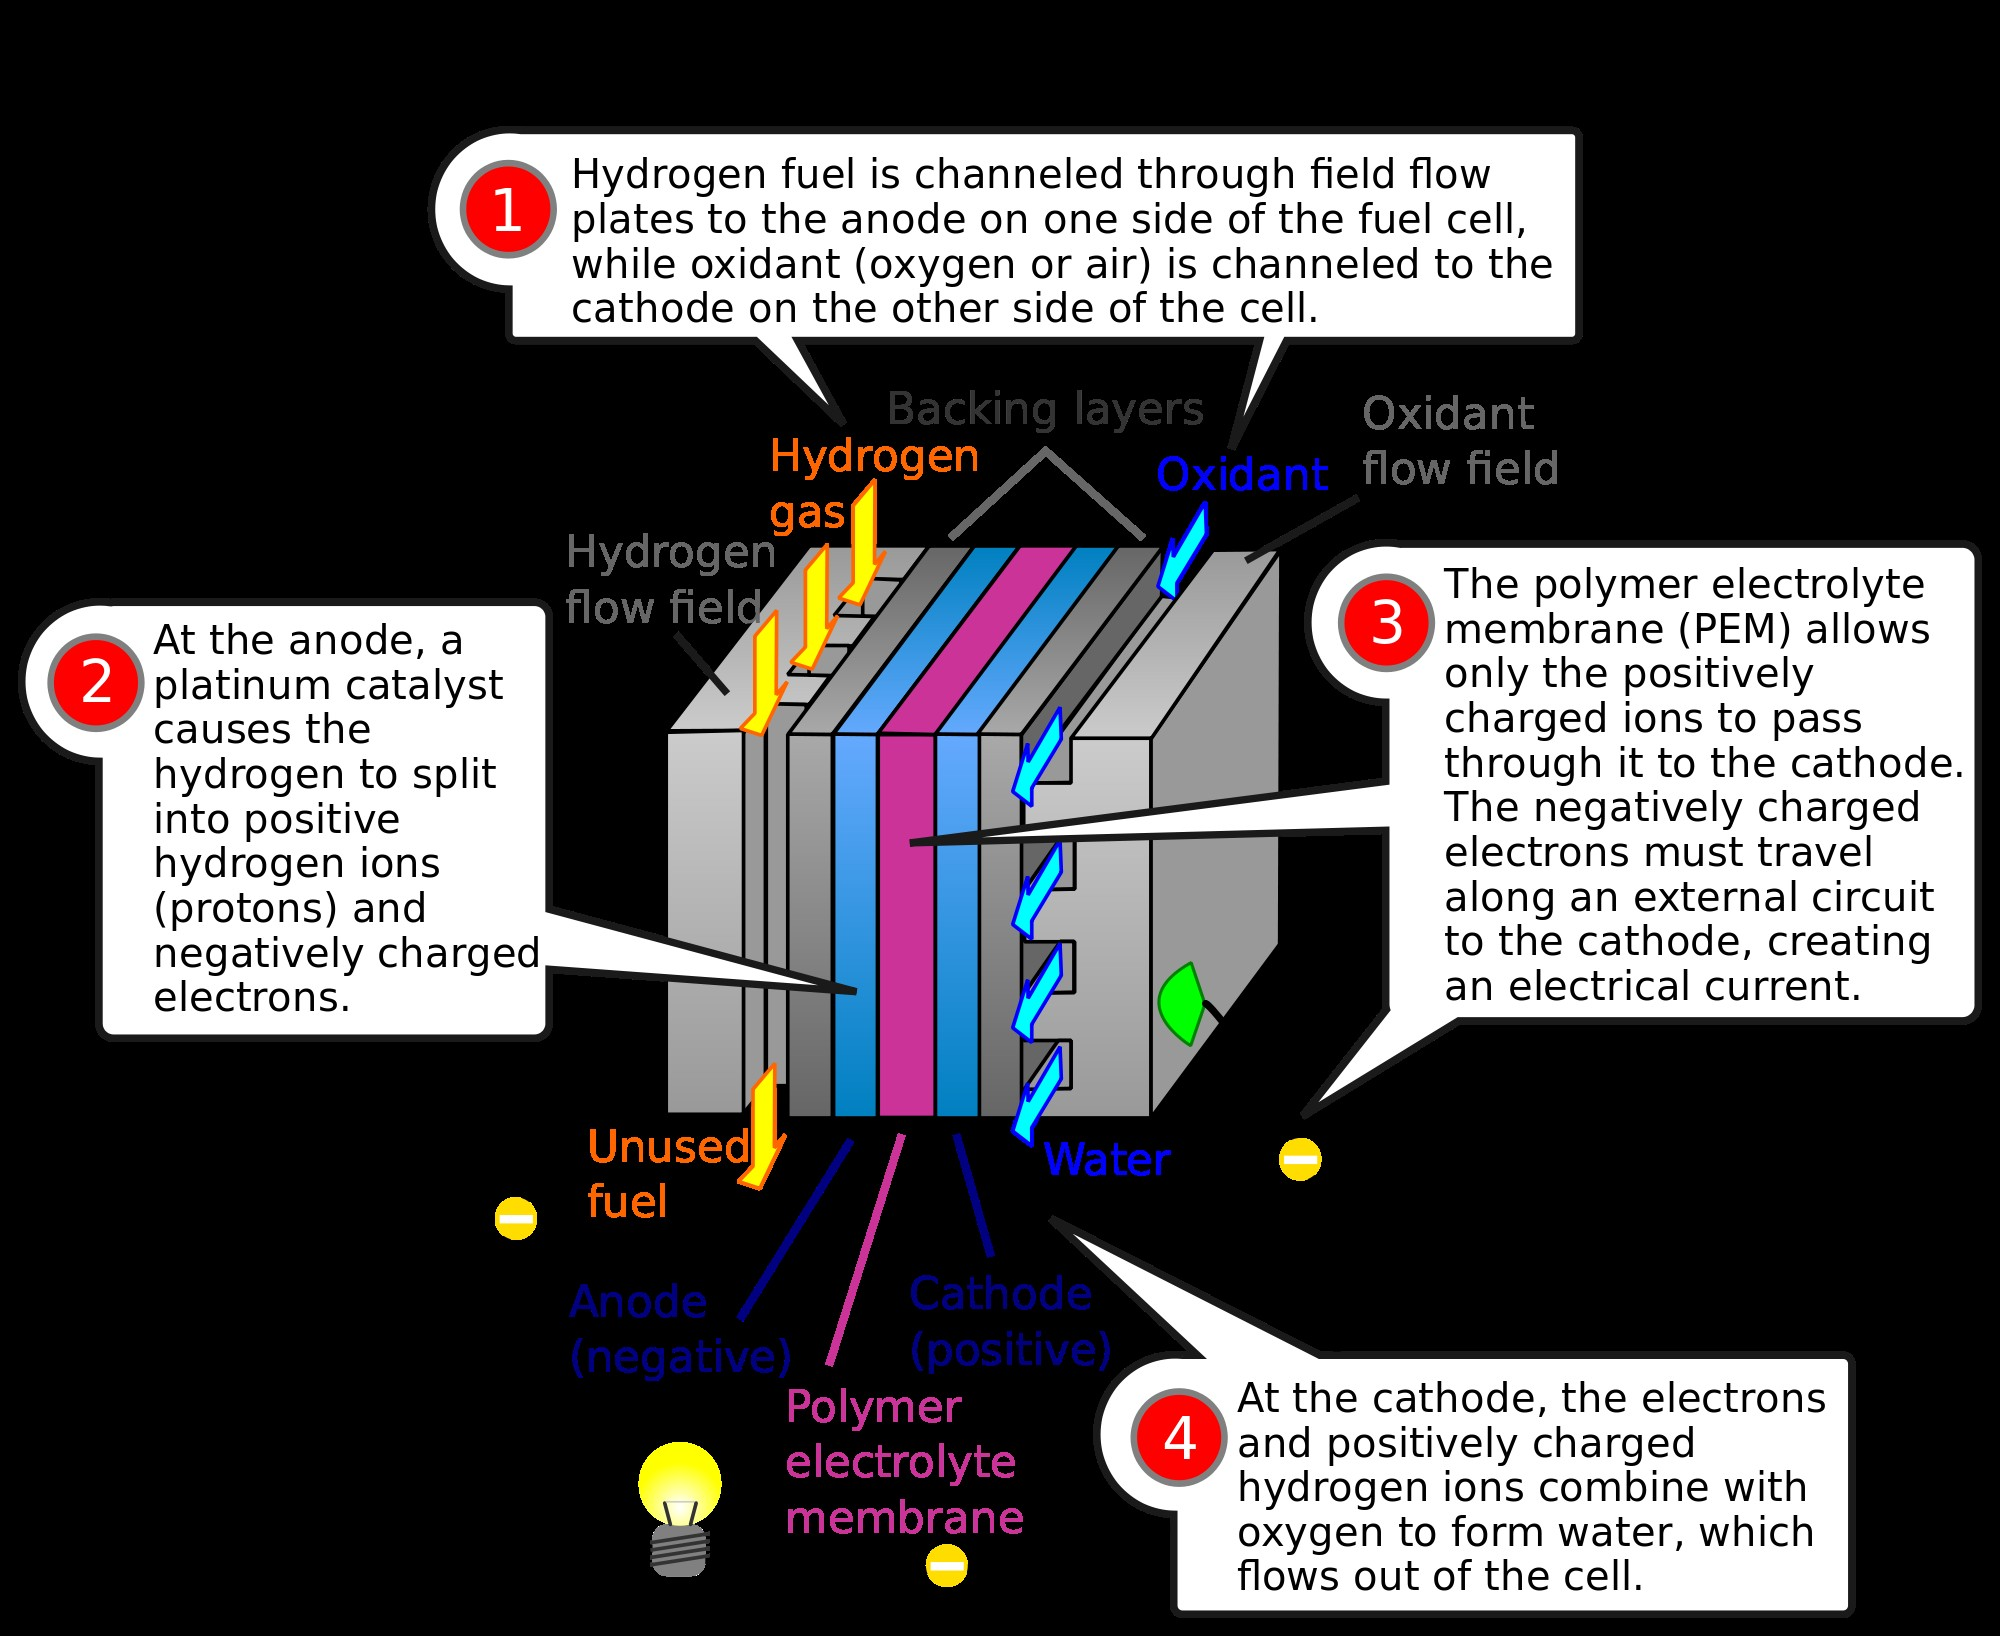 How Does A Combustion Engine Work Diagram Harvest Energy From Thin Air with Graphene Of How Does A Combustion Engine Work Diagram